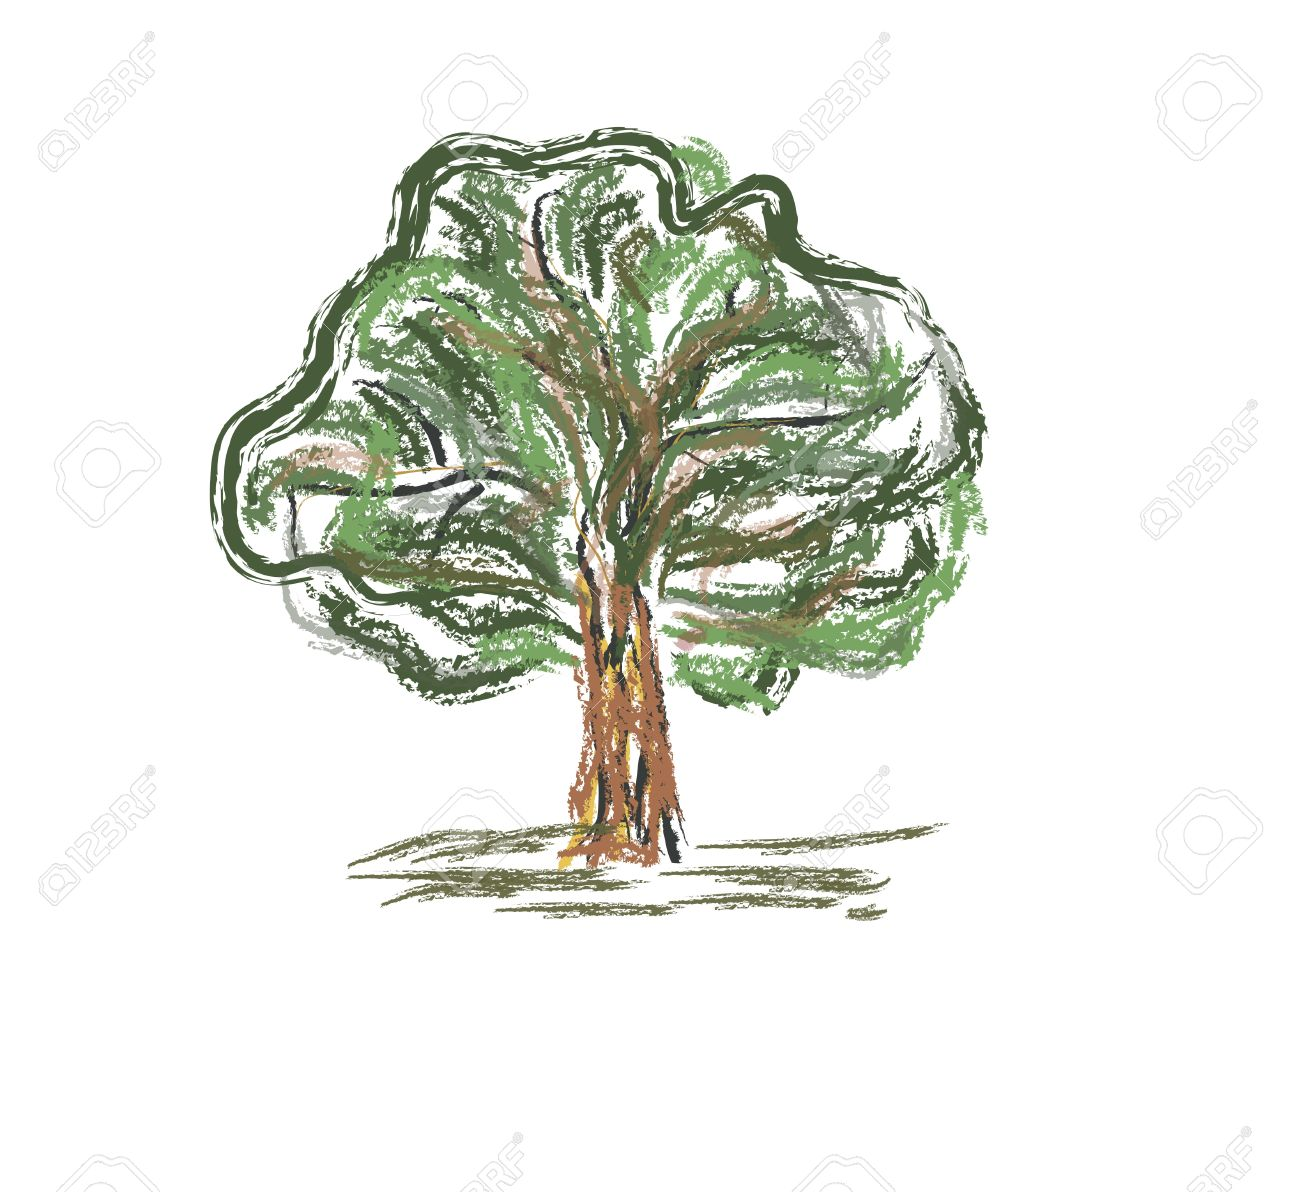 colorful old tree sketch fast pencil hand drawing illustration